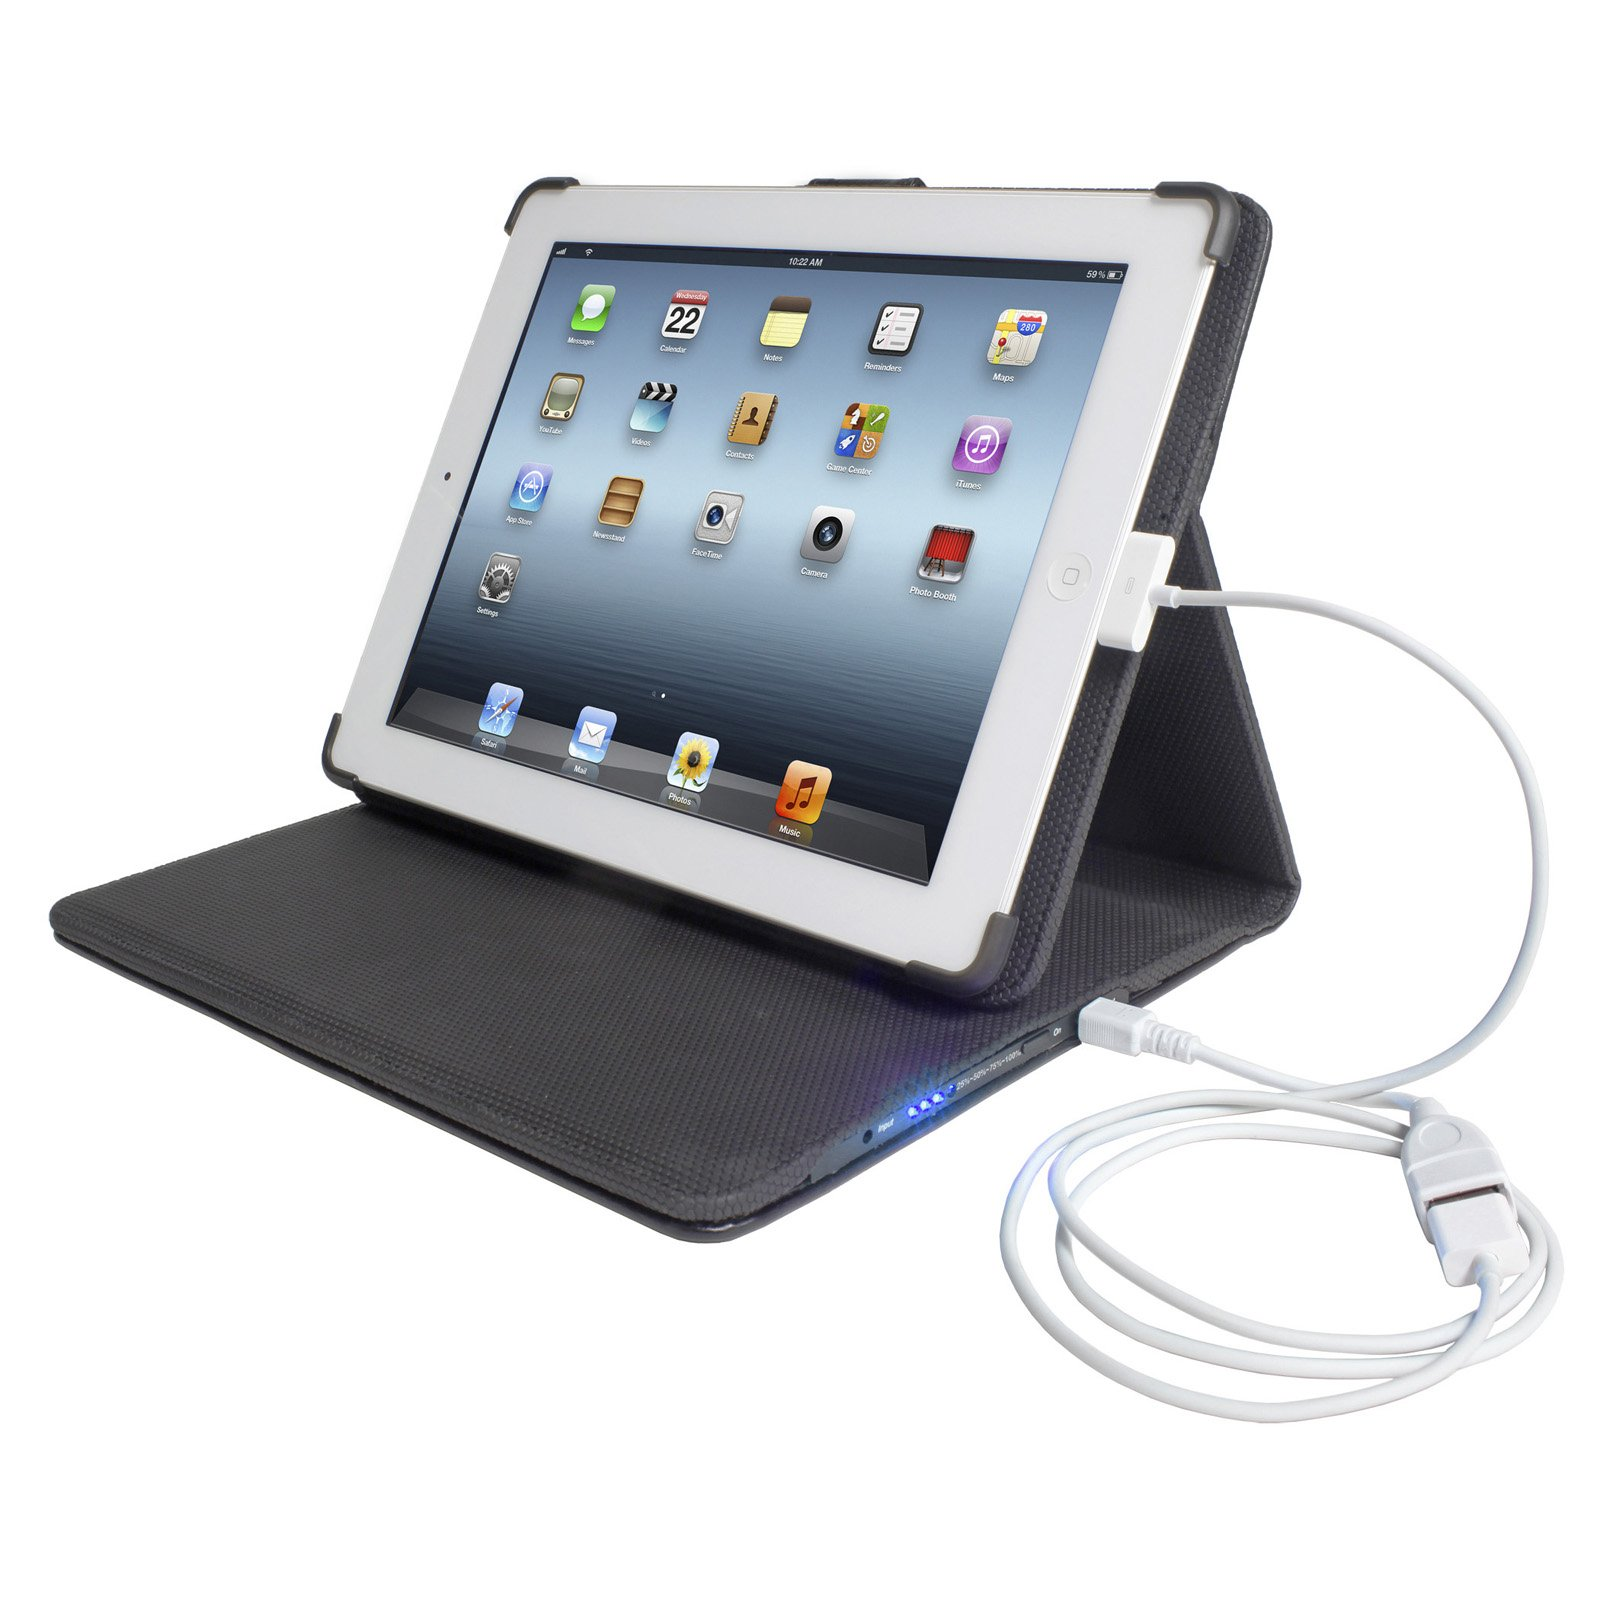 PCT Brands Props 12,000mAh Power Folio Case for iPad 2 by PCT Brands (Image #1)